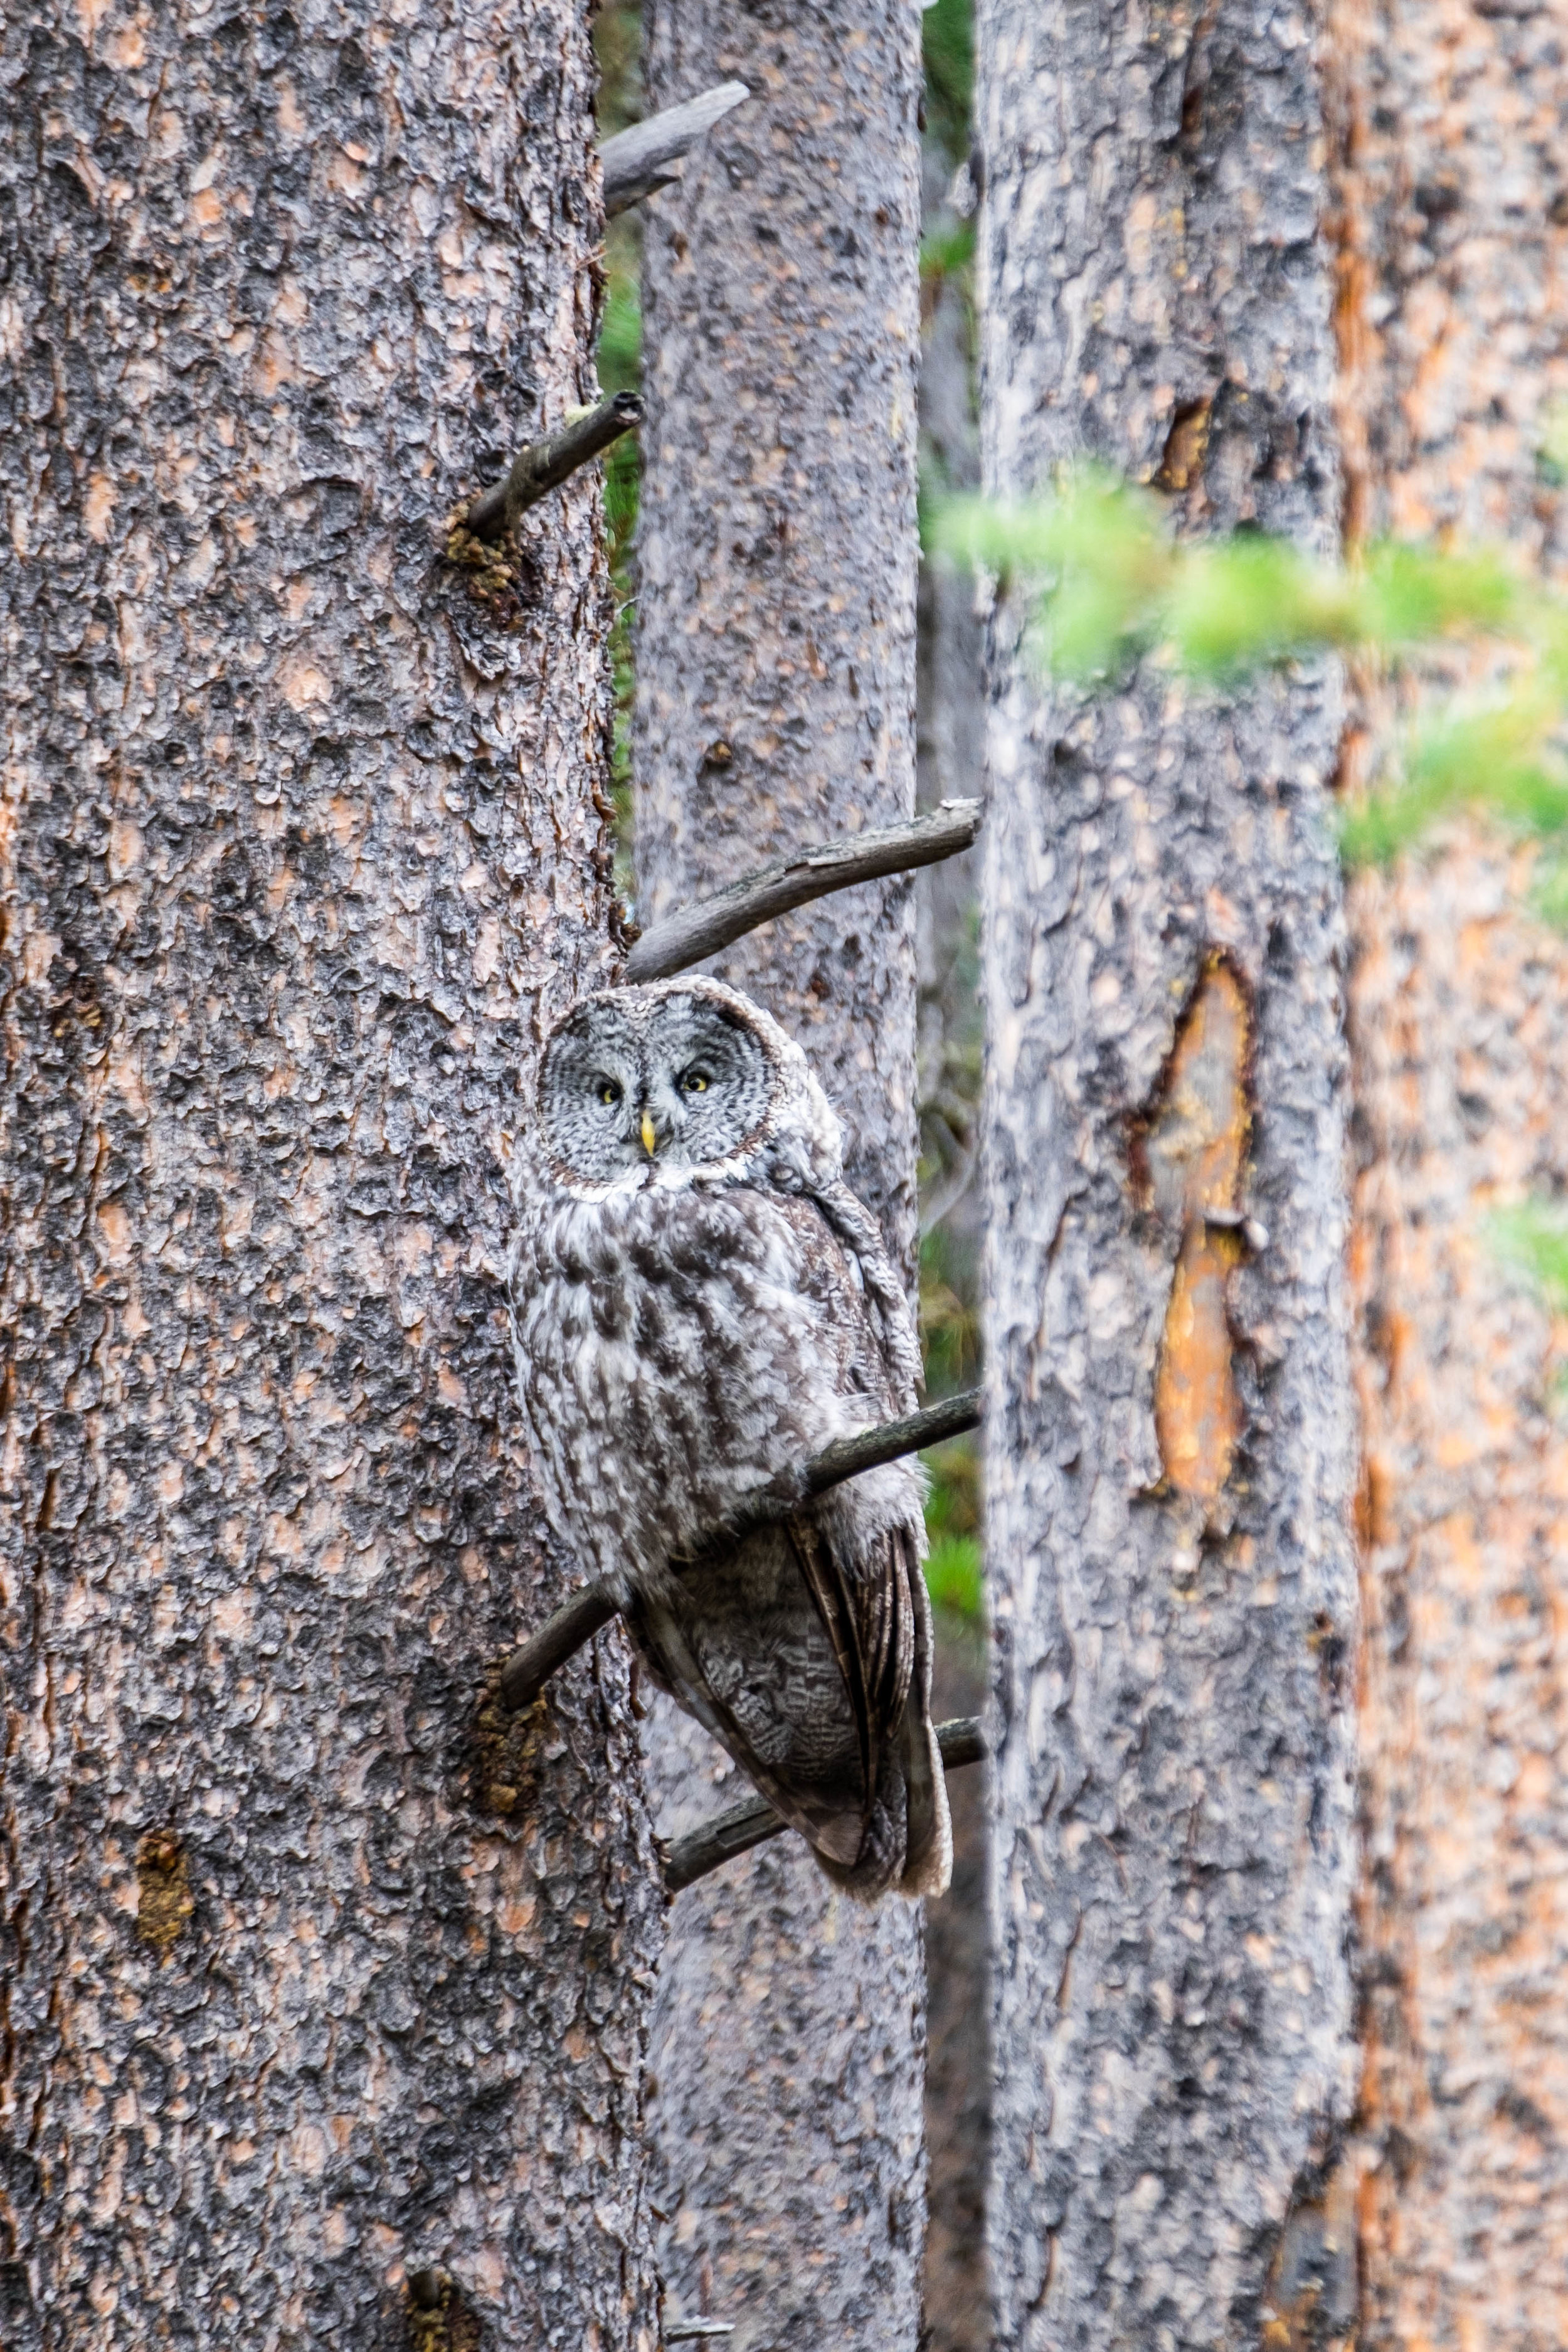 Can you spot the owl? Amazing camouflage.